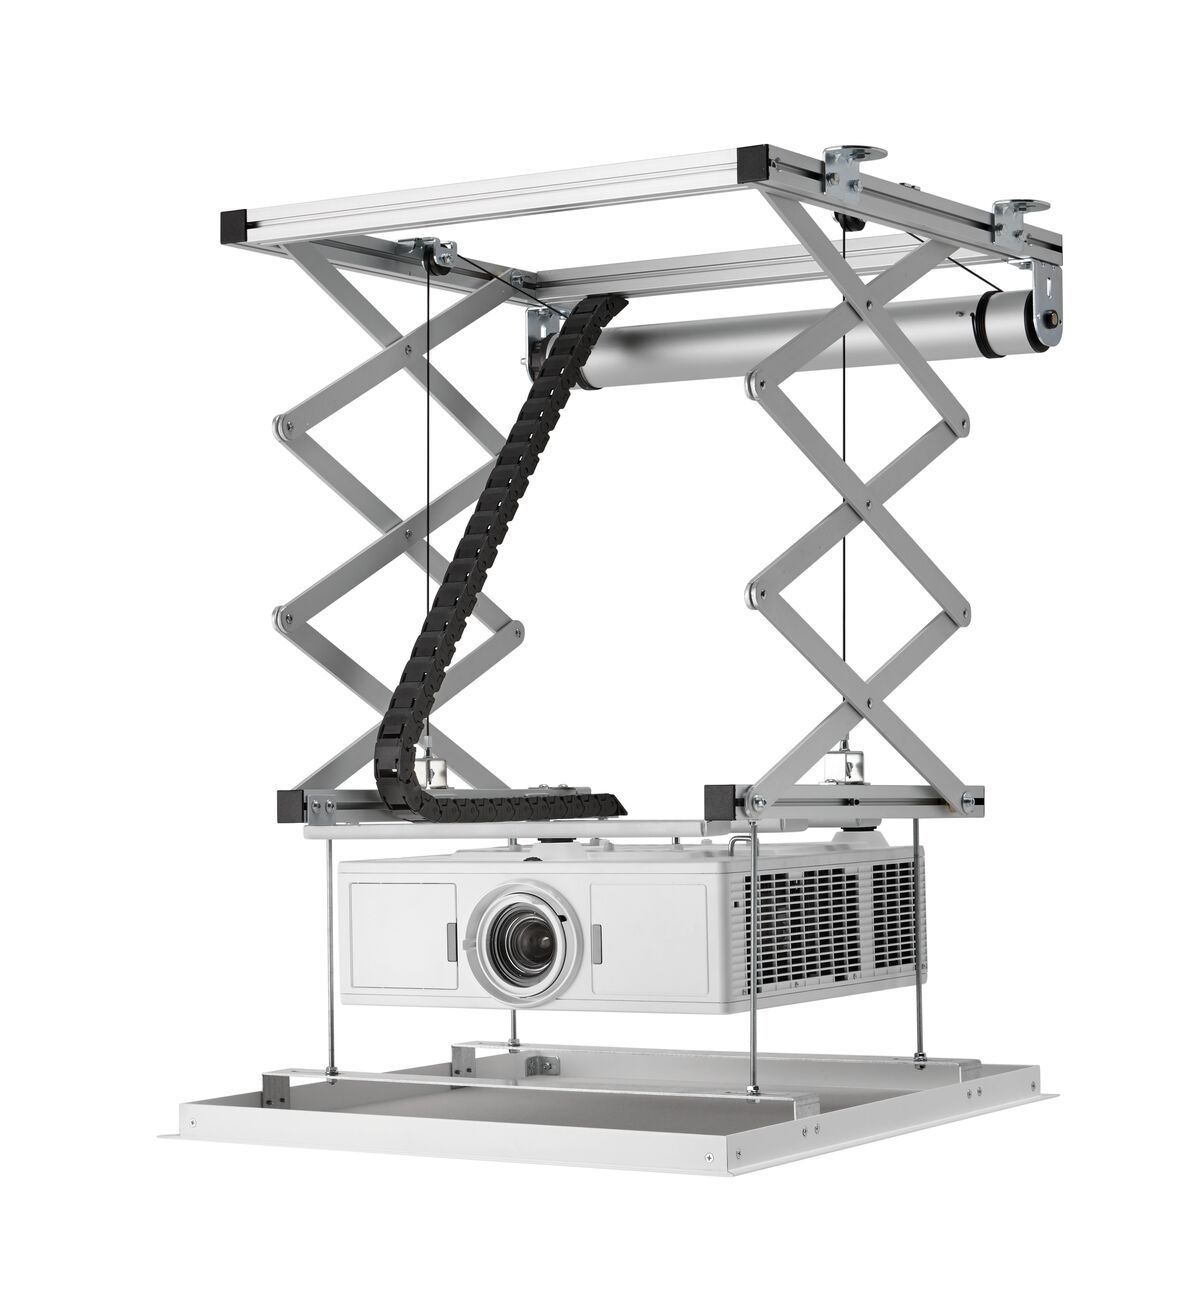 Vogel's PPL 2100 Projector lift system - Application